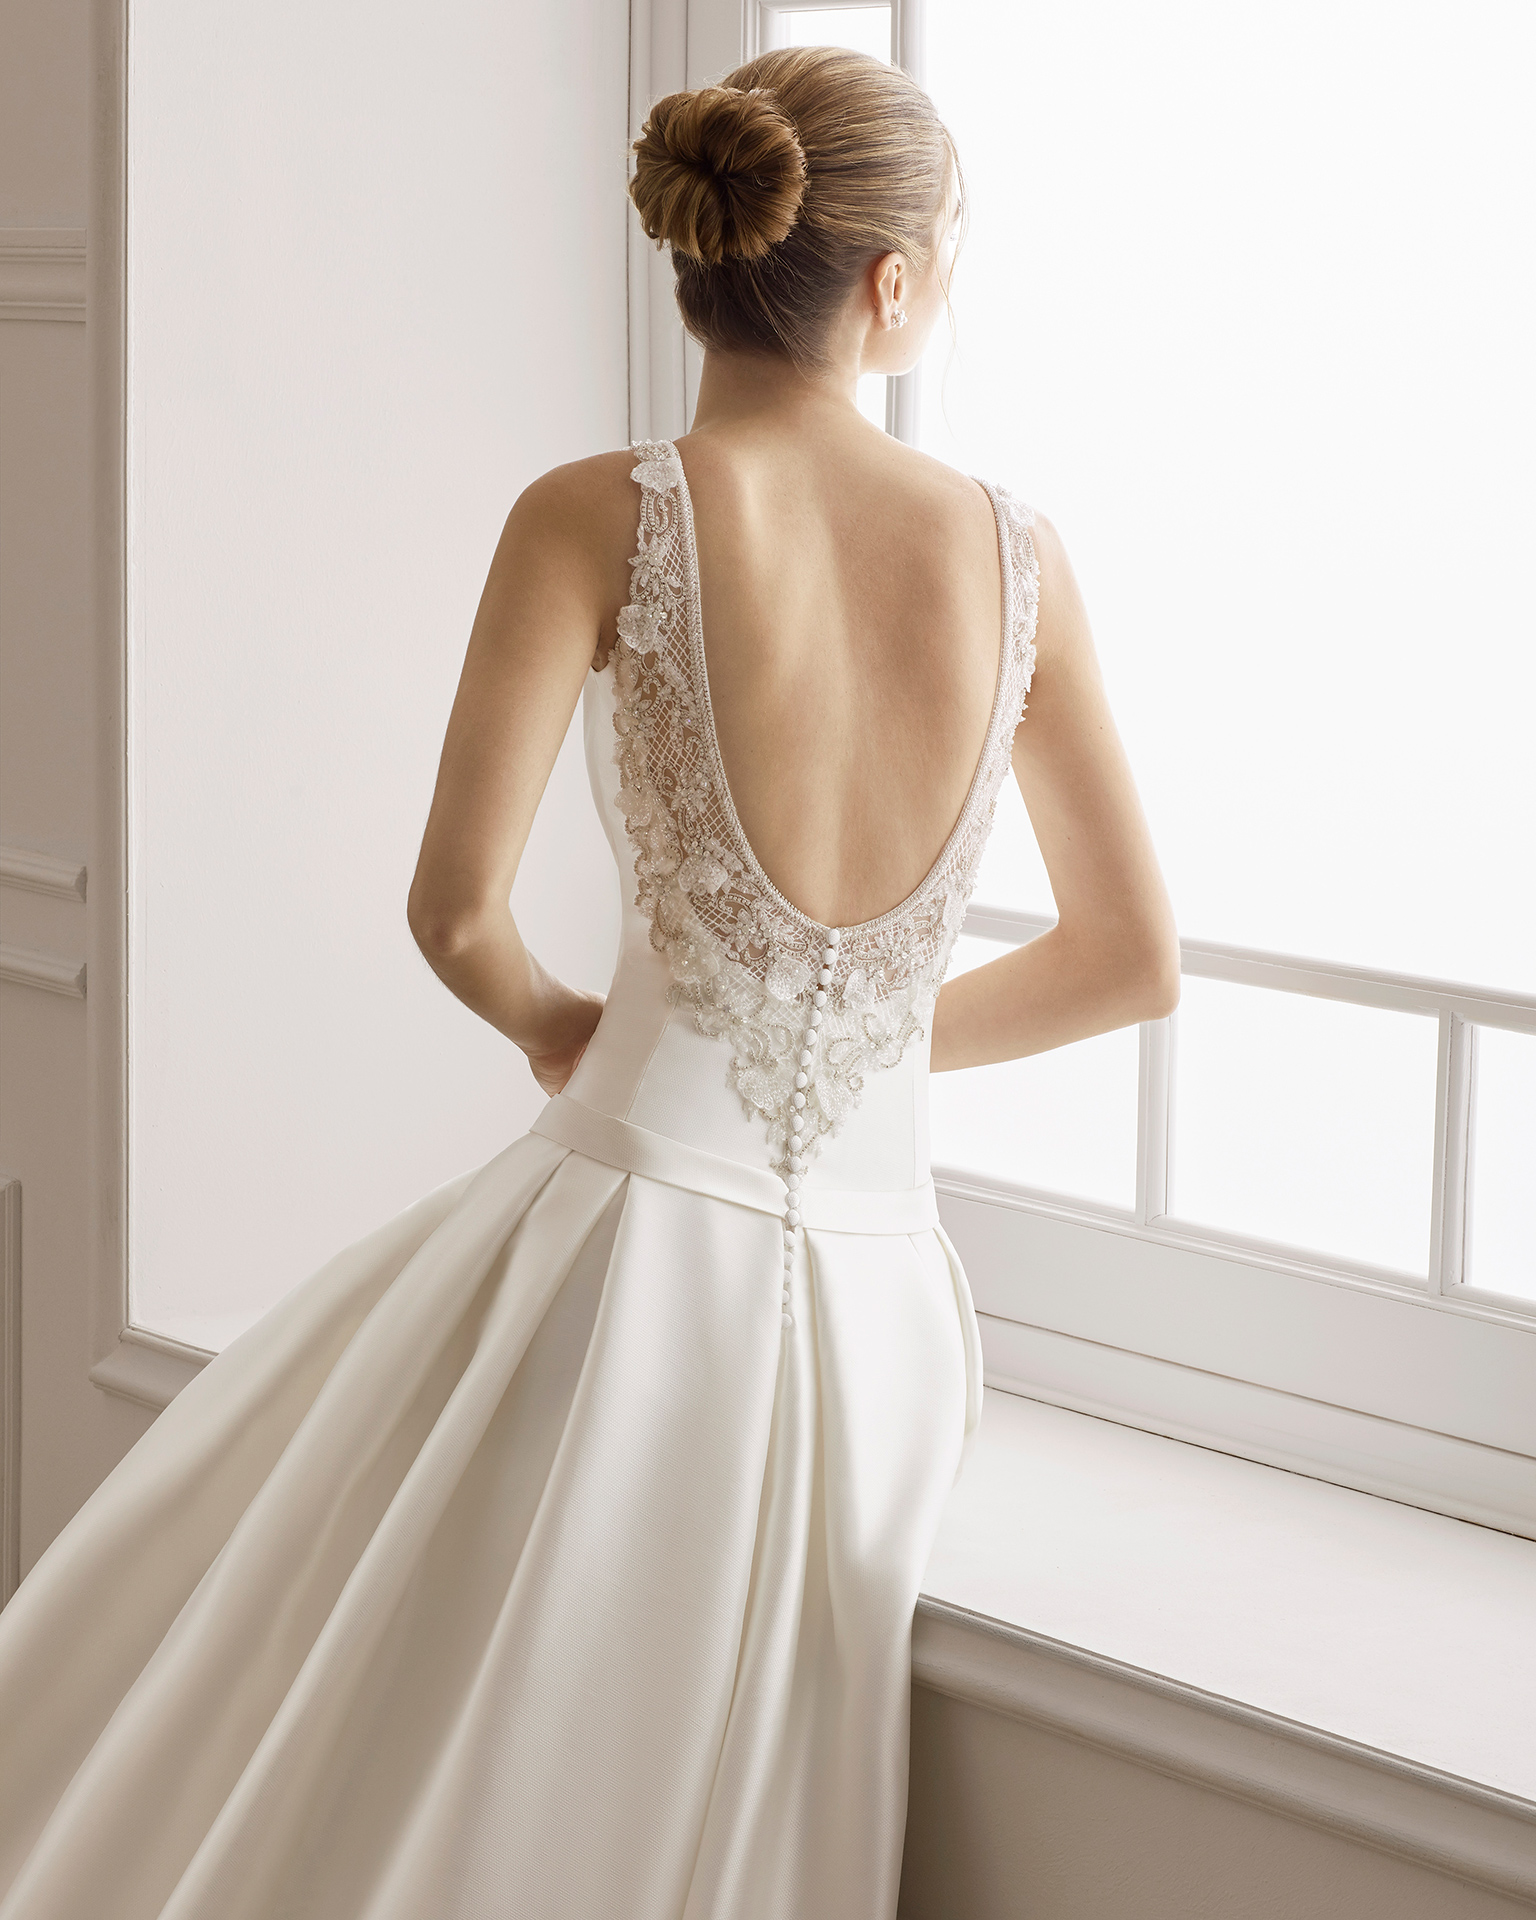 Robe de mariée style classique en tamis et dentelle avec pierreries. Col bateau et décolleté dans le dos avec pierreries. Disponible en couleur naturelle. Collection AIRE BARCELONA 2019.